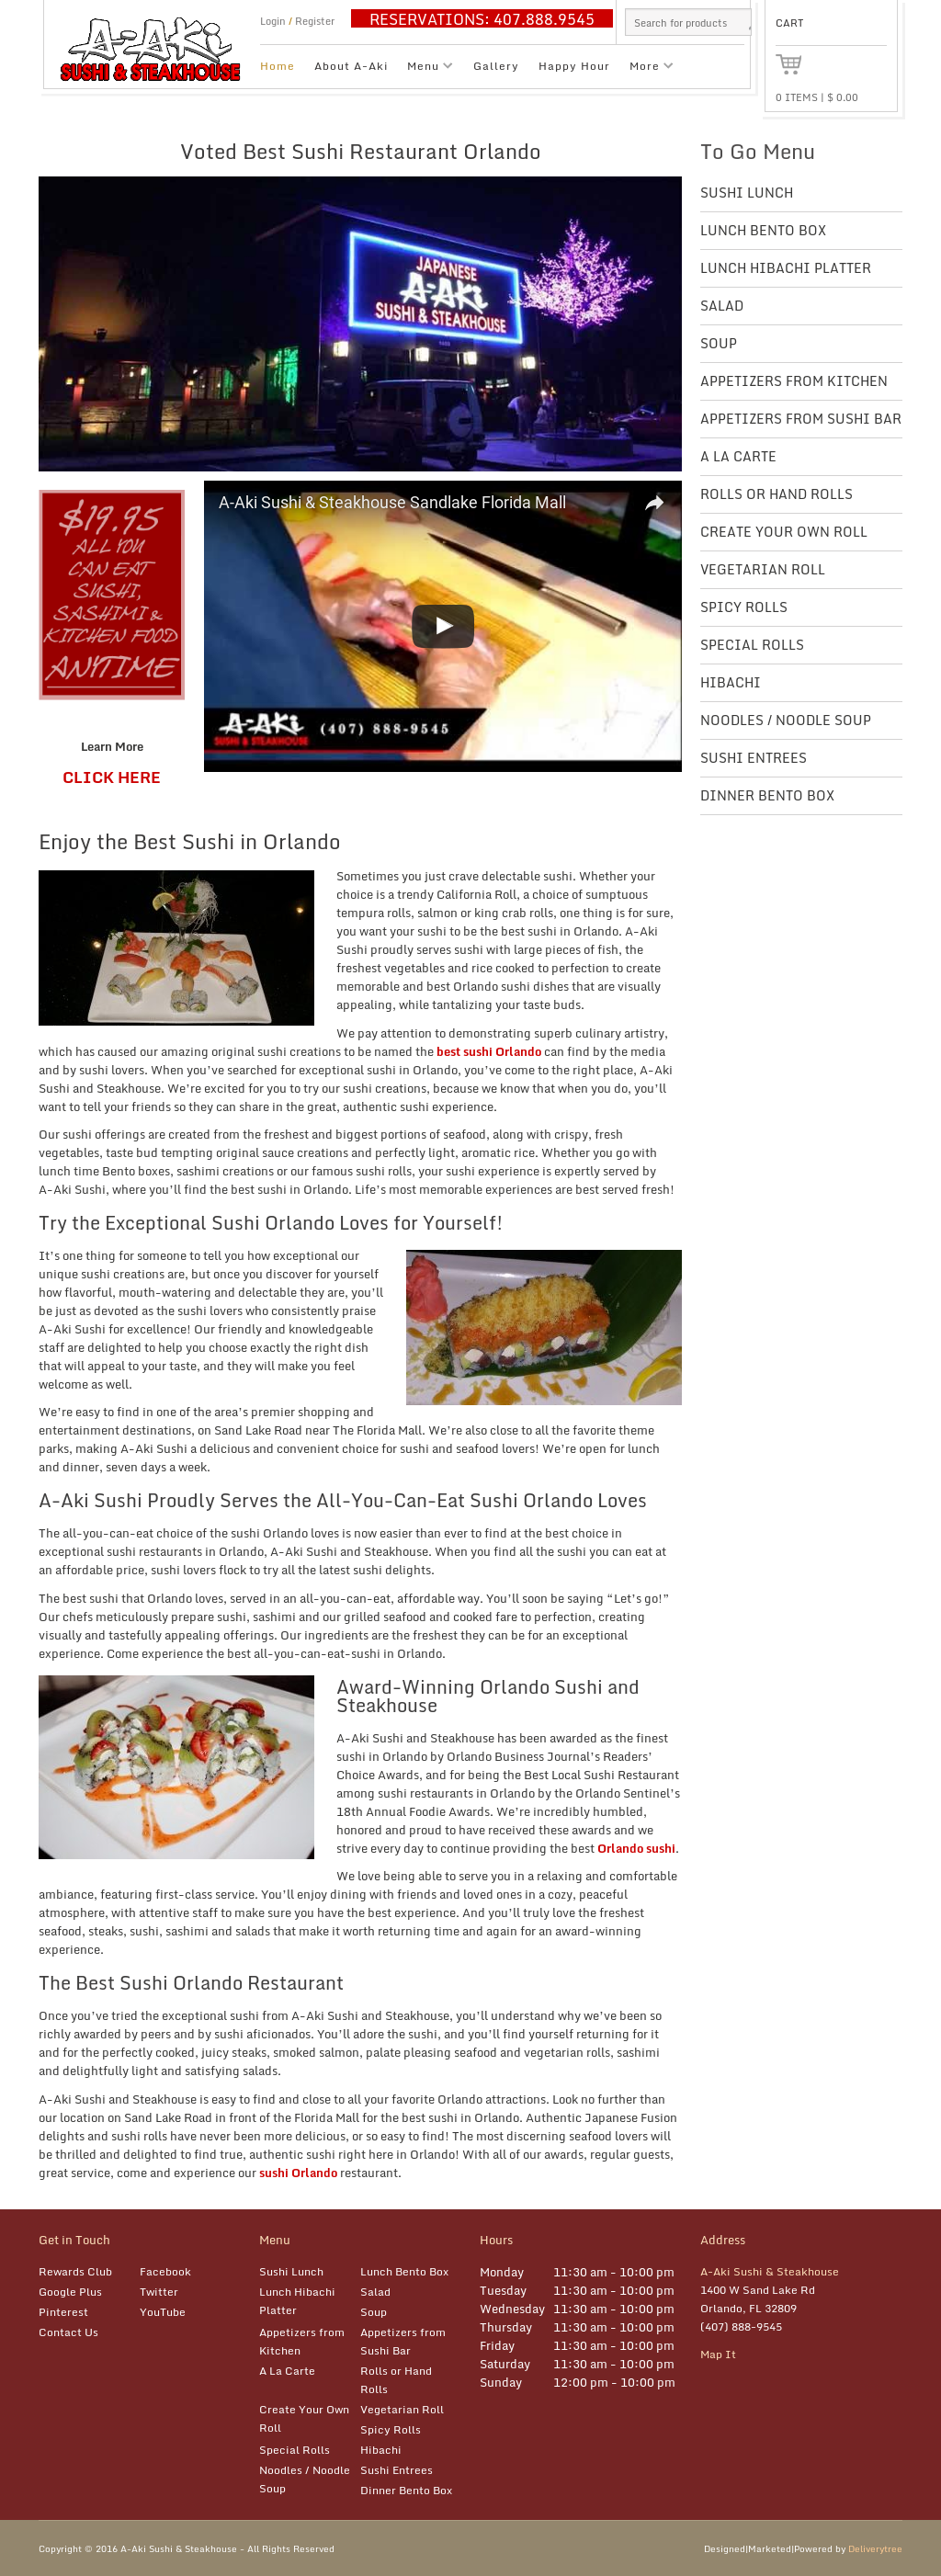 A-aki Sushi & Steakhouse Competitors, Revenue and Employees - Owler ...